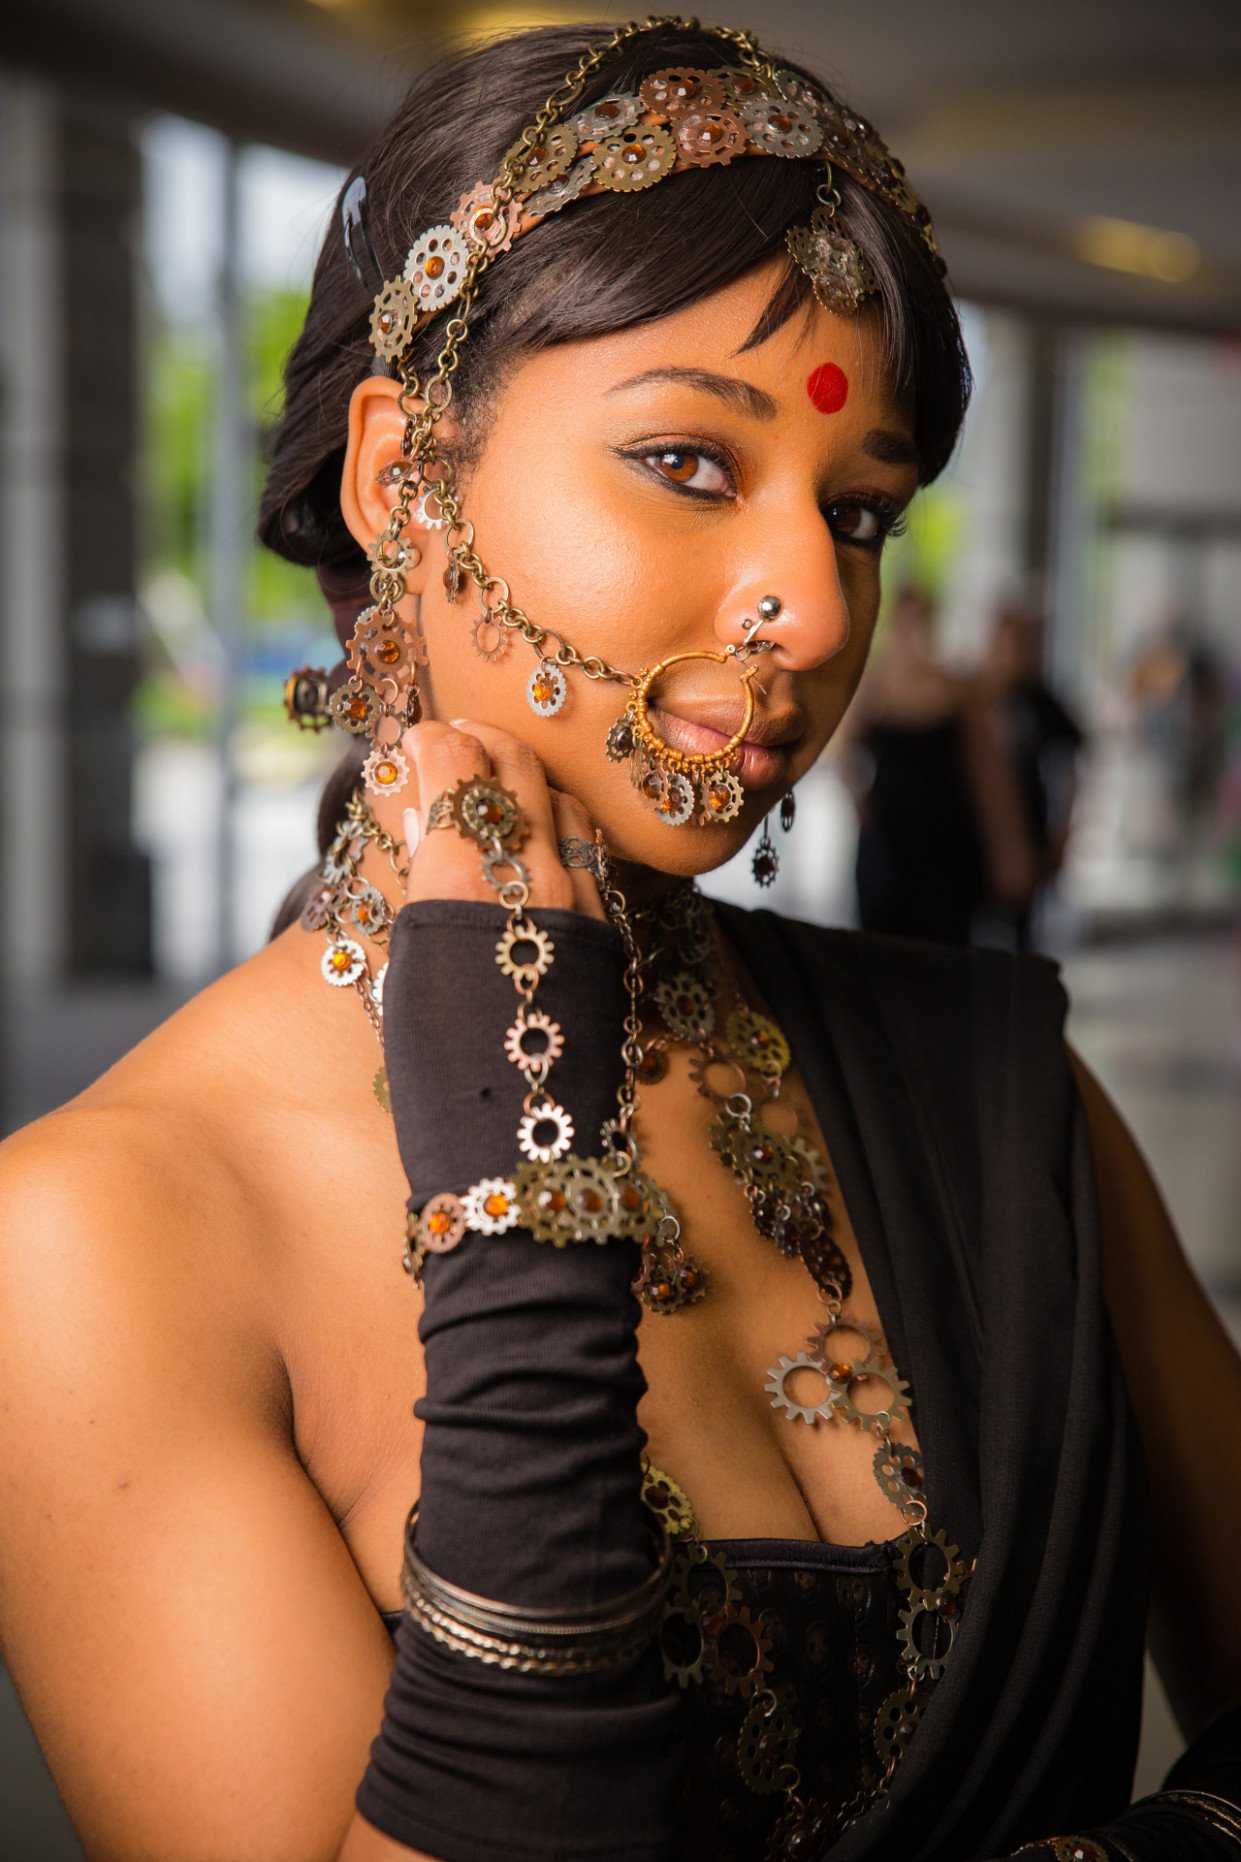 ladymakeupsiren: Bollywood steampunk: Sunahala... - People ...